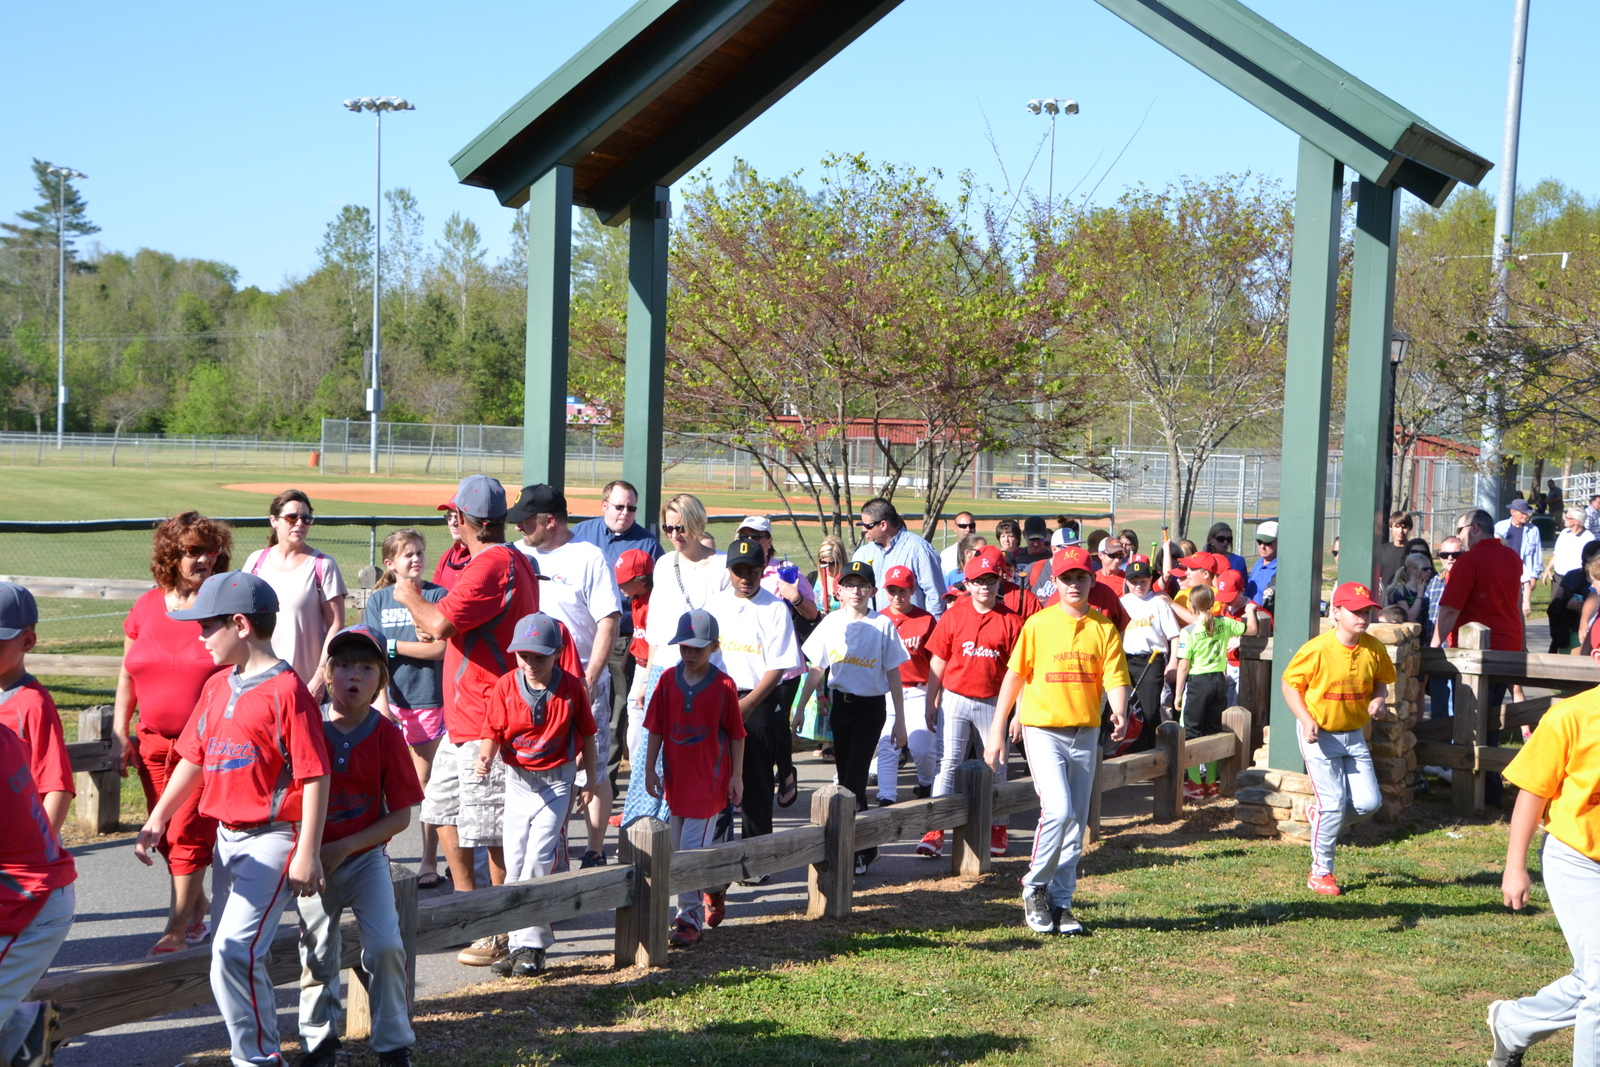 photo of Little League players at Catawba Meadows Park